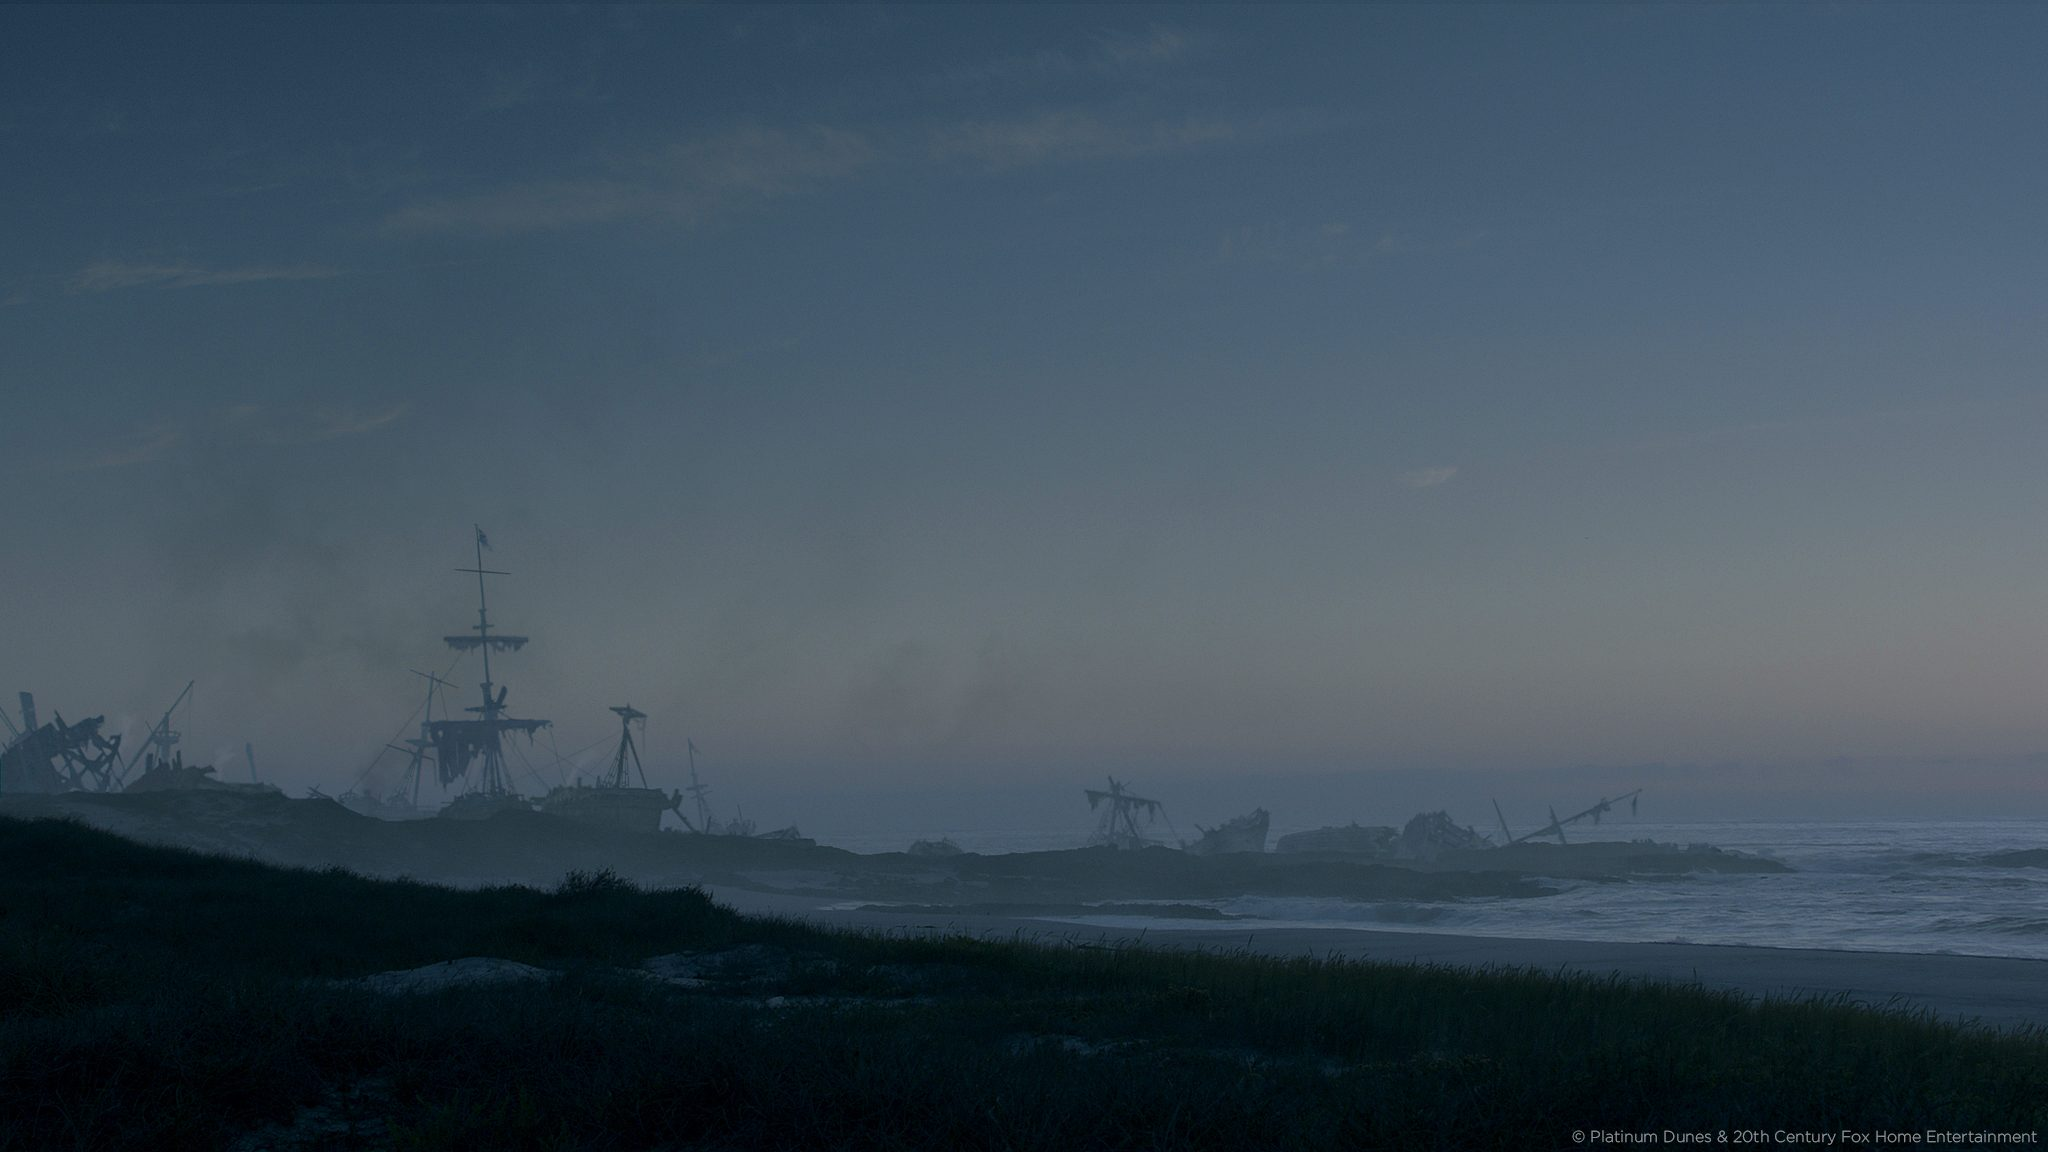 black-sails-shore-boat